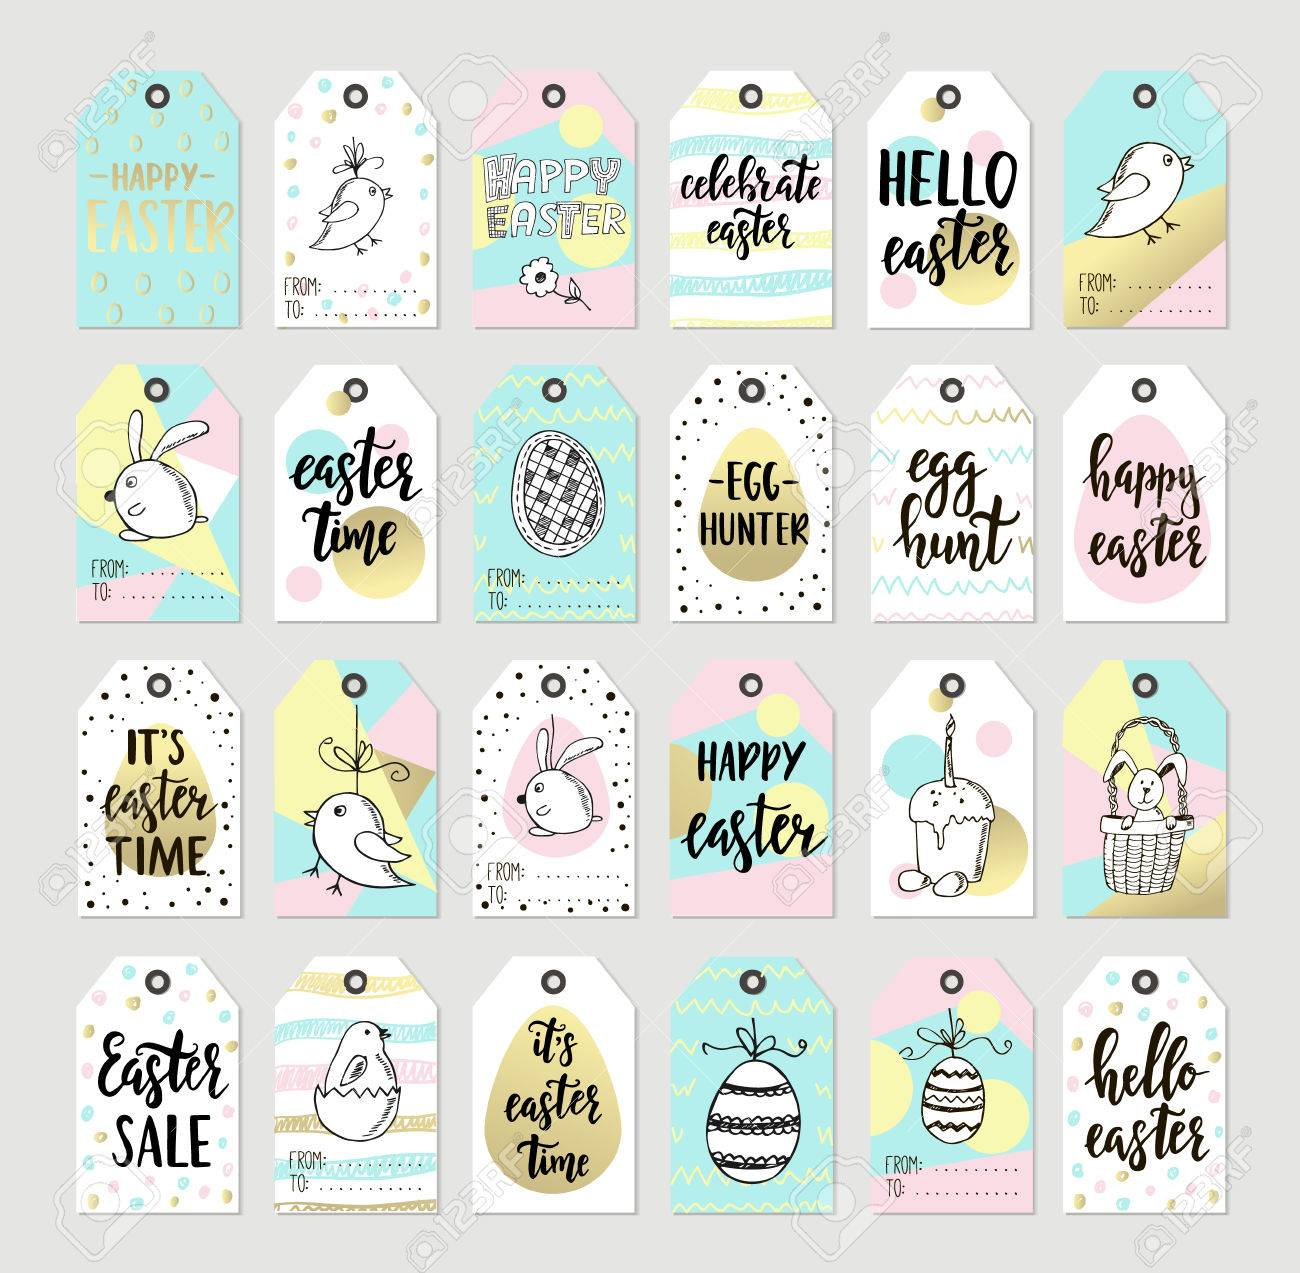 Set with happy easter gift tags and cards with calligraphy set with happy easter gift tags and cards with calligraphy handwritten lettering hand drawn negle Images